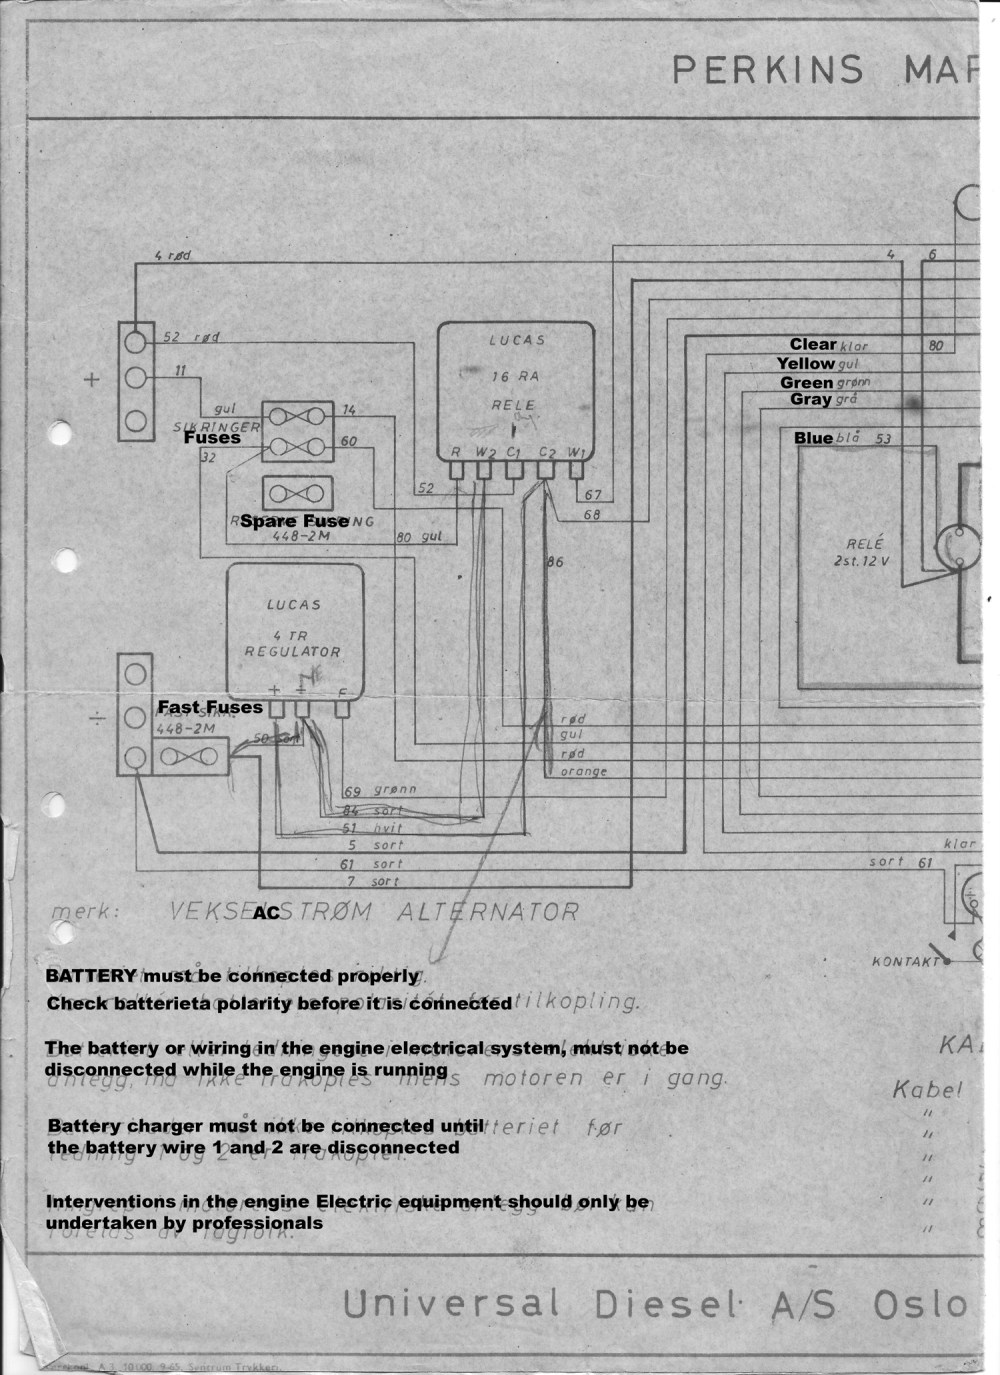 medium resolution of fjord electrical diagrams fjordms33 van dorn wiring diagram perkins wiring diagram